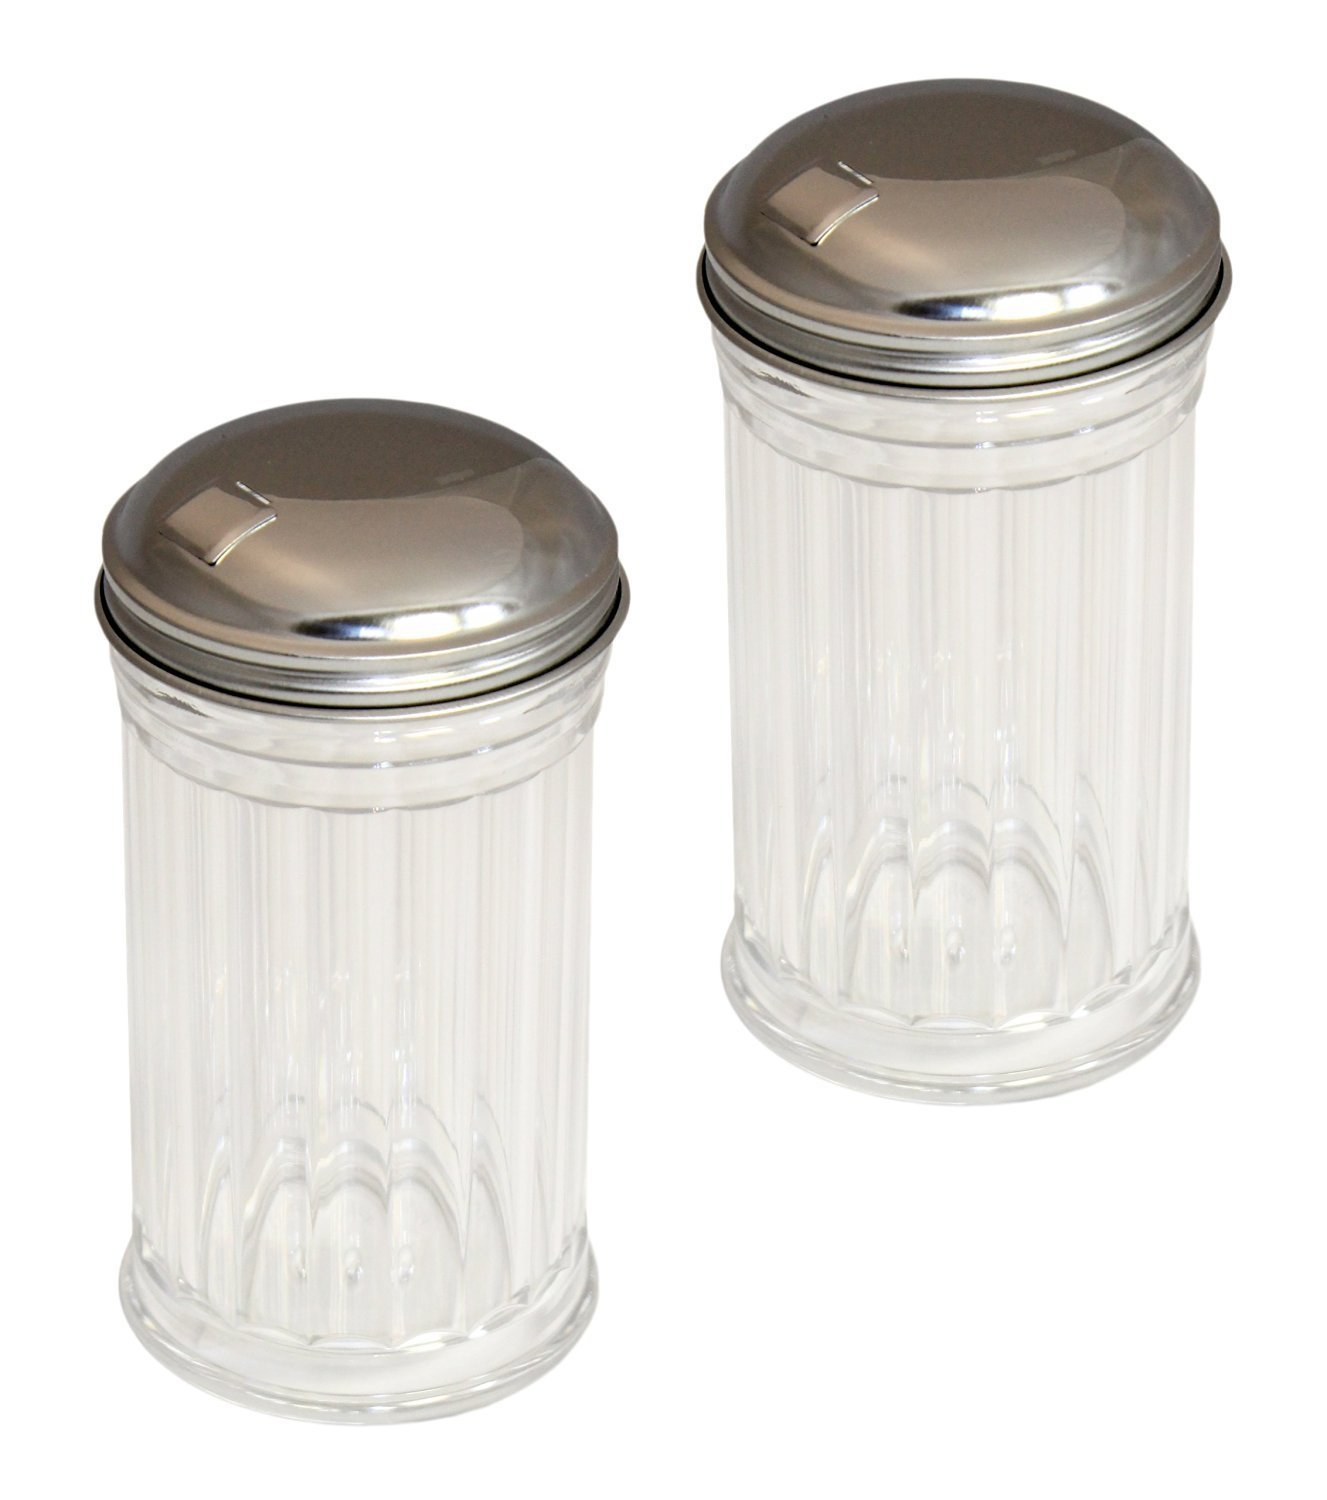 Royal Industries Set of 2 Clear Plastic Sugar Shakers with Stainless Steel Side Flip Pouring Cap by Royal Industries